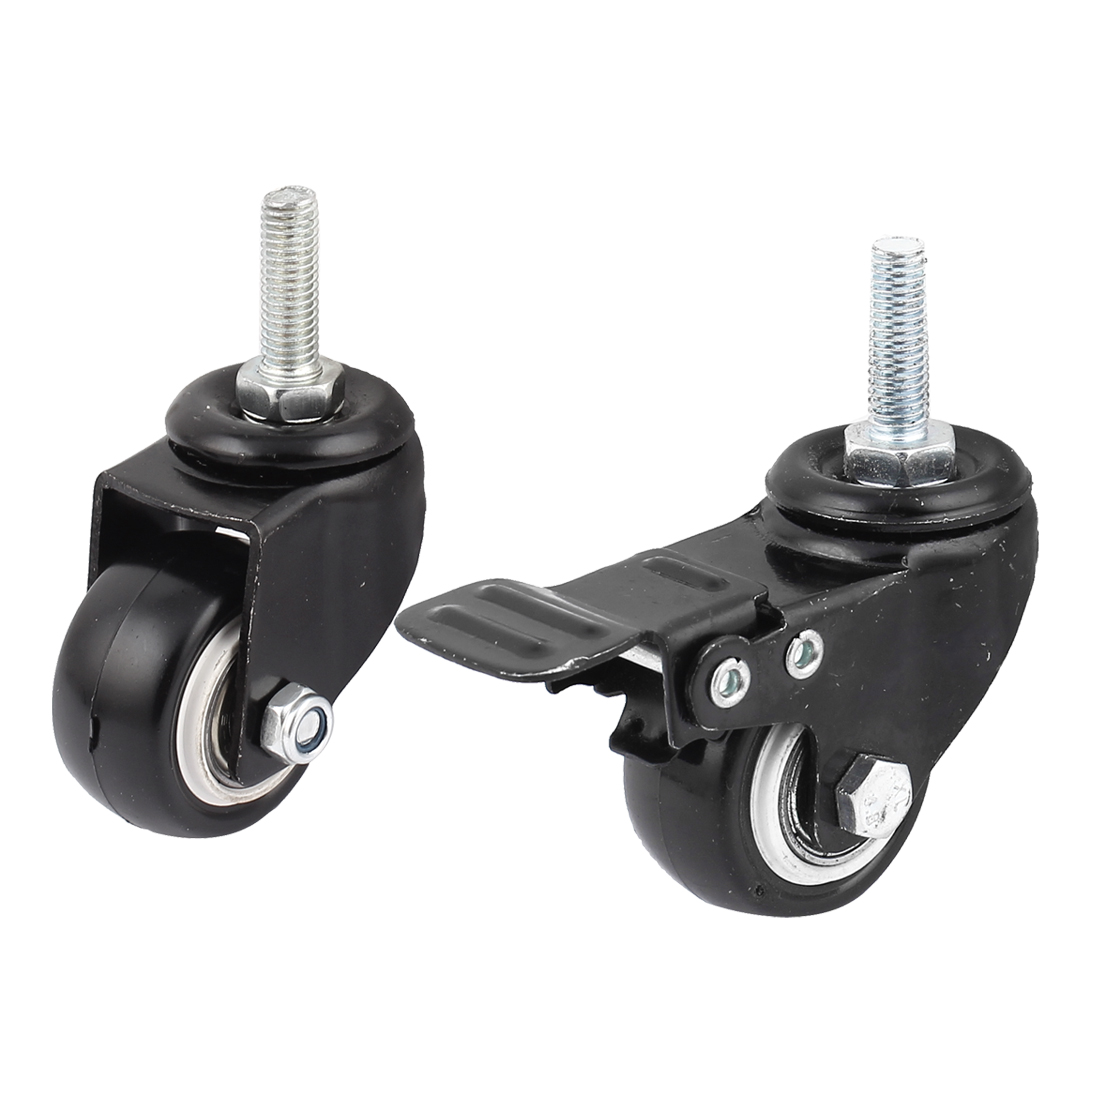 2Pcs Shopping Cart Rotary Plate Nylon Ball Bearing Swivel Caster Wheel